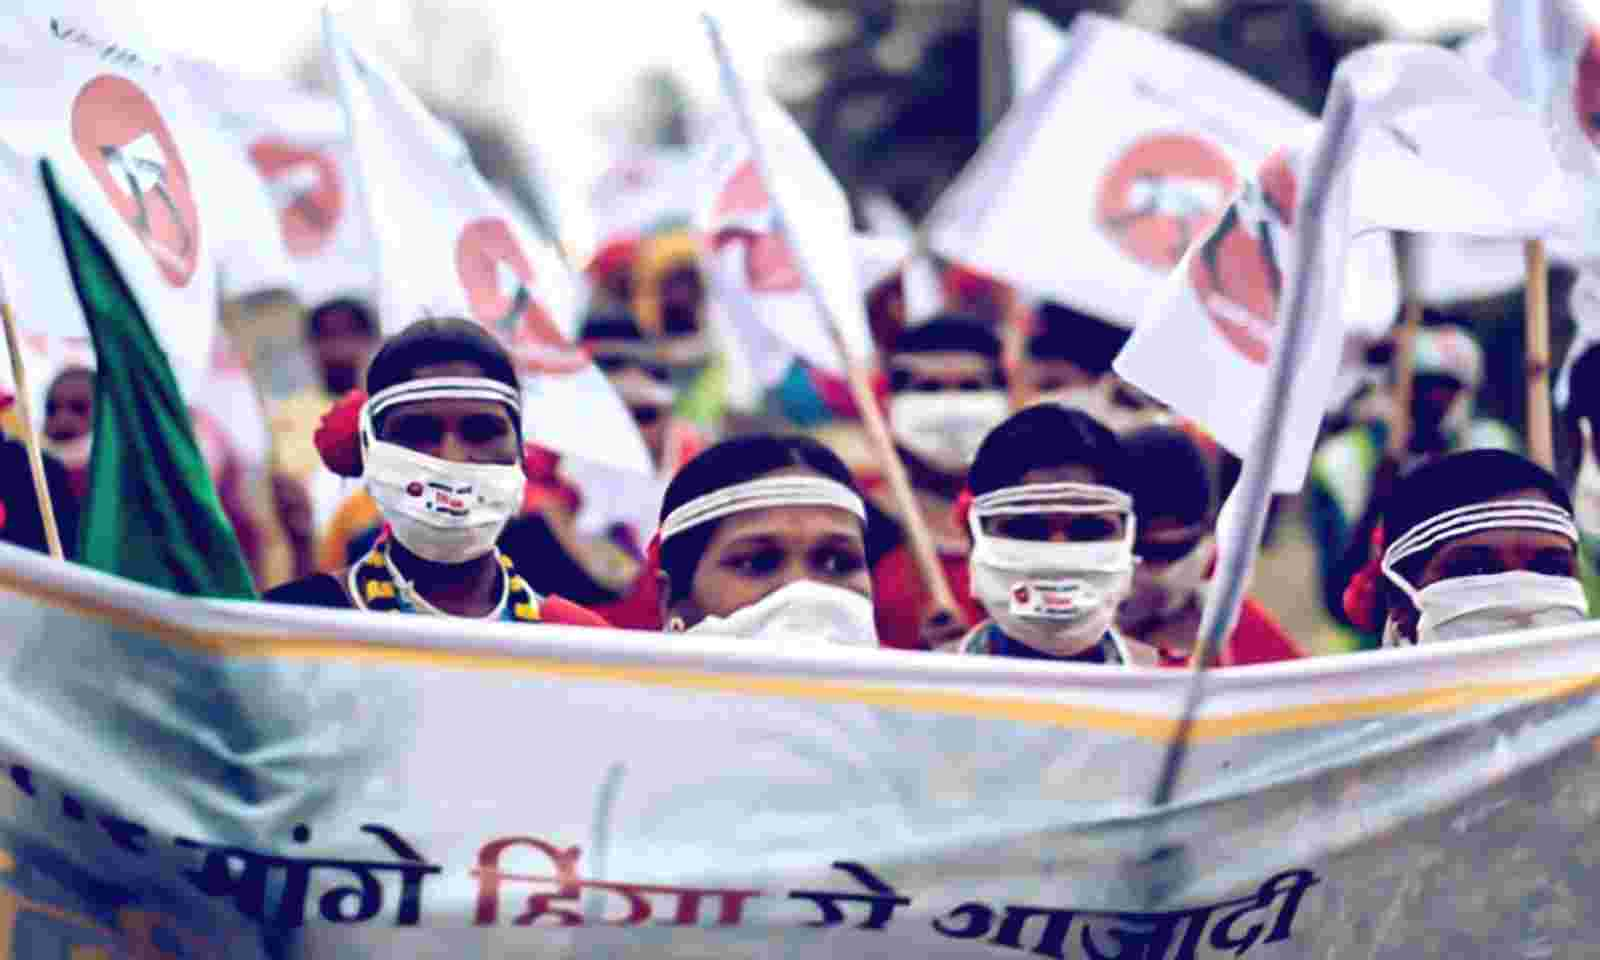 Chhattisgarh: Over 150 People Hold Dandi March 2.0 For Peace In Naxal-Hit Areas, Urge Govt-Maoists Dialogue